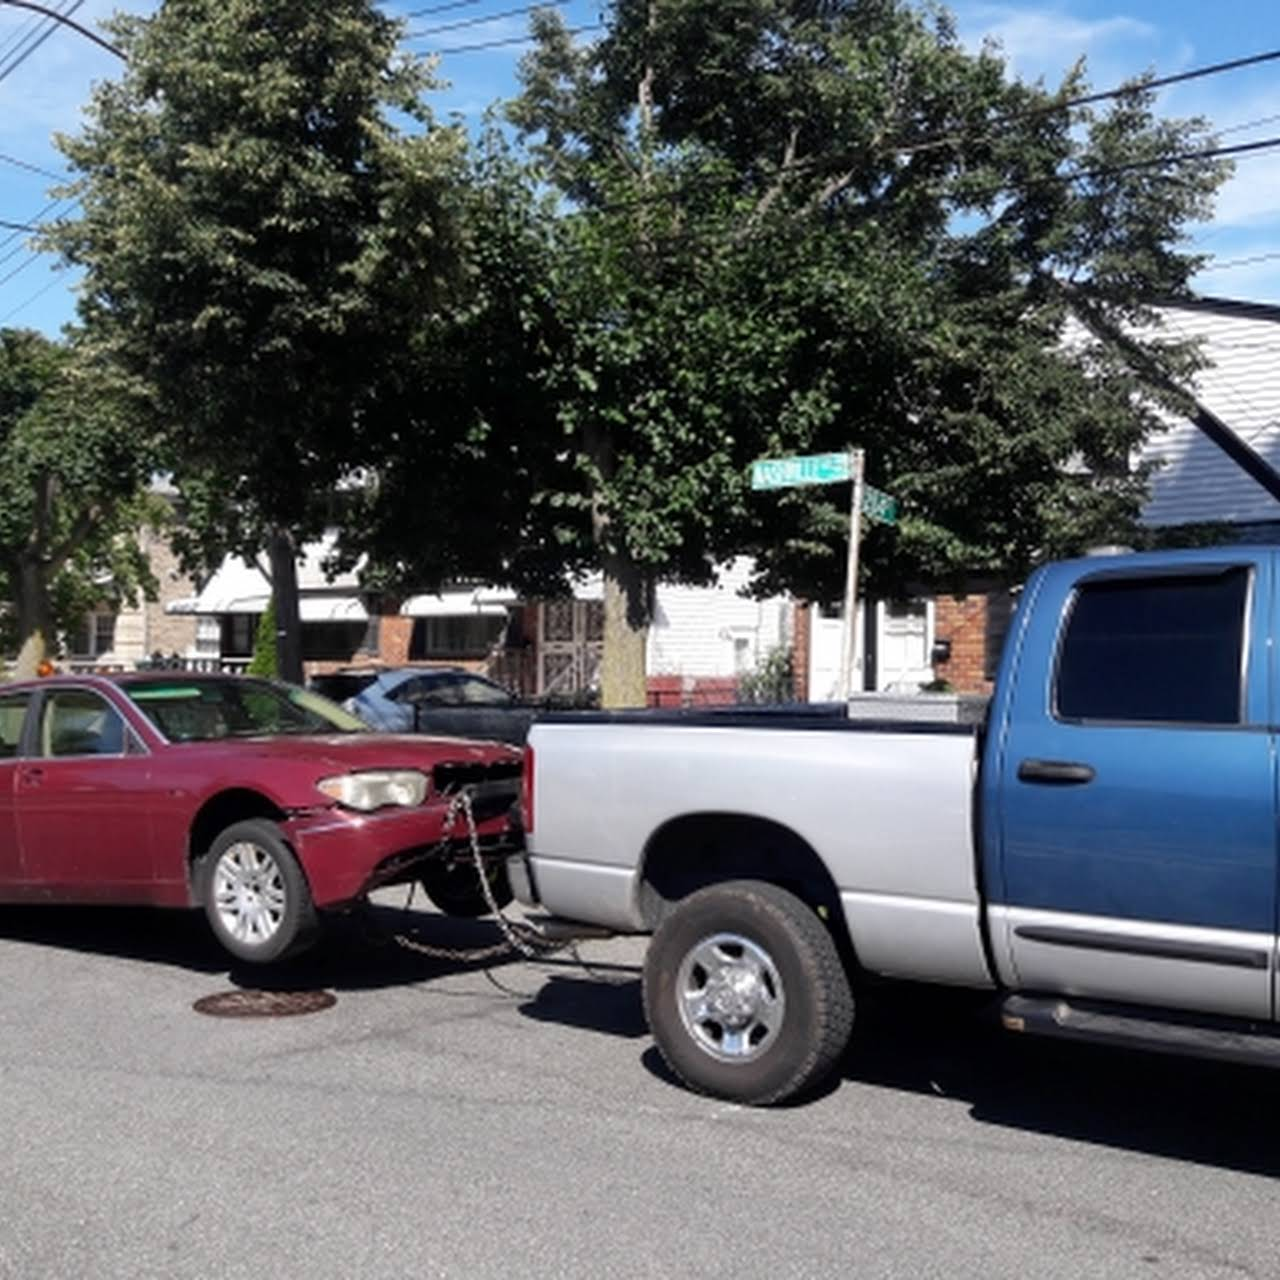 Cash For Junk Cars - Auto Wrecker in Howard beach